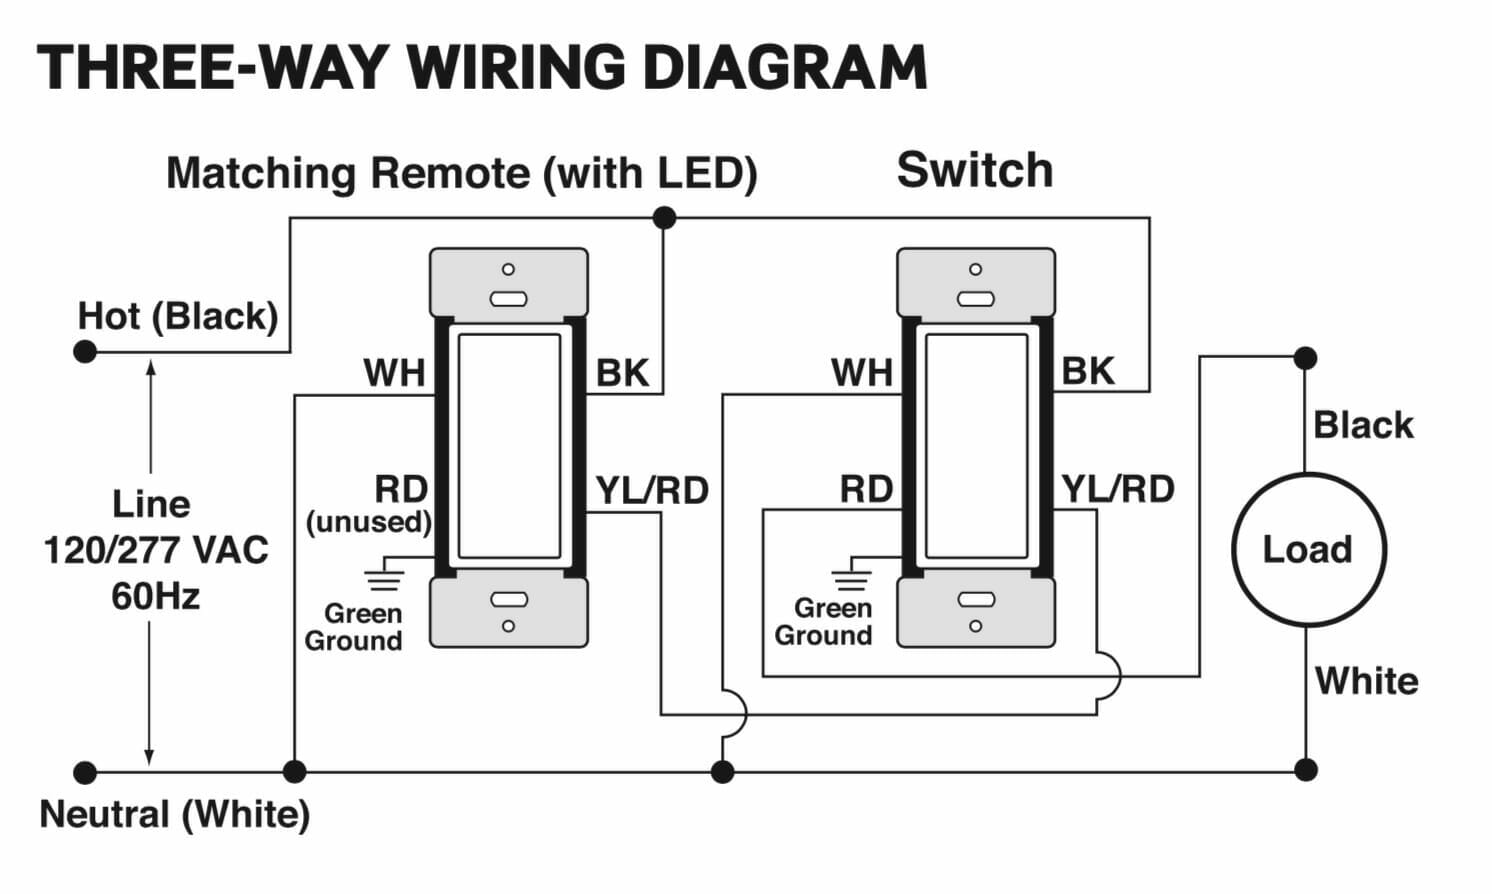 [DIAGRAM_38IU]  HomeKit Light Switches & Dimmers - Review | Leviton Dimmer Switch Wiring Diagram |  | Michael Kummer